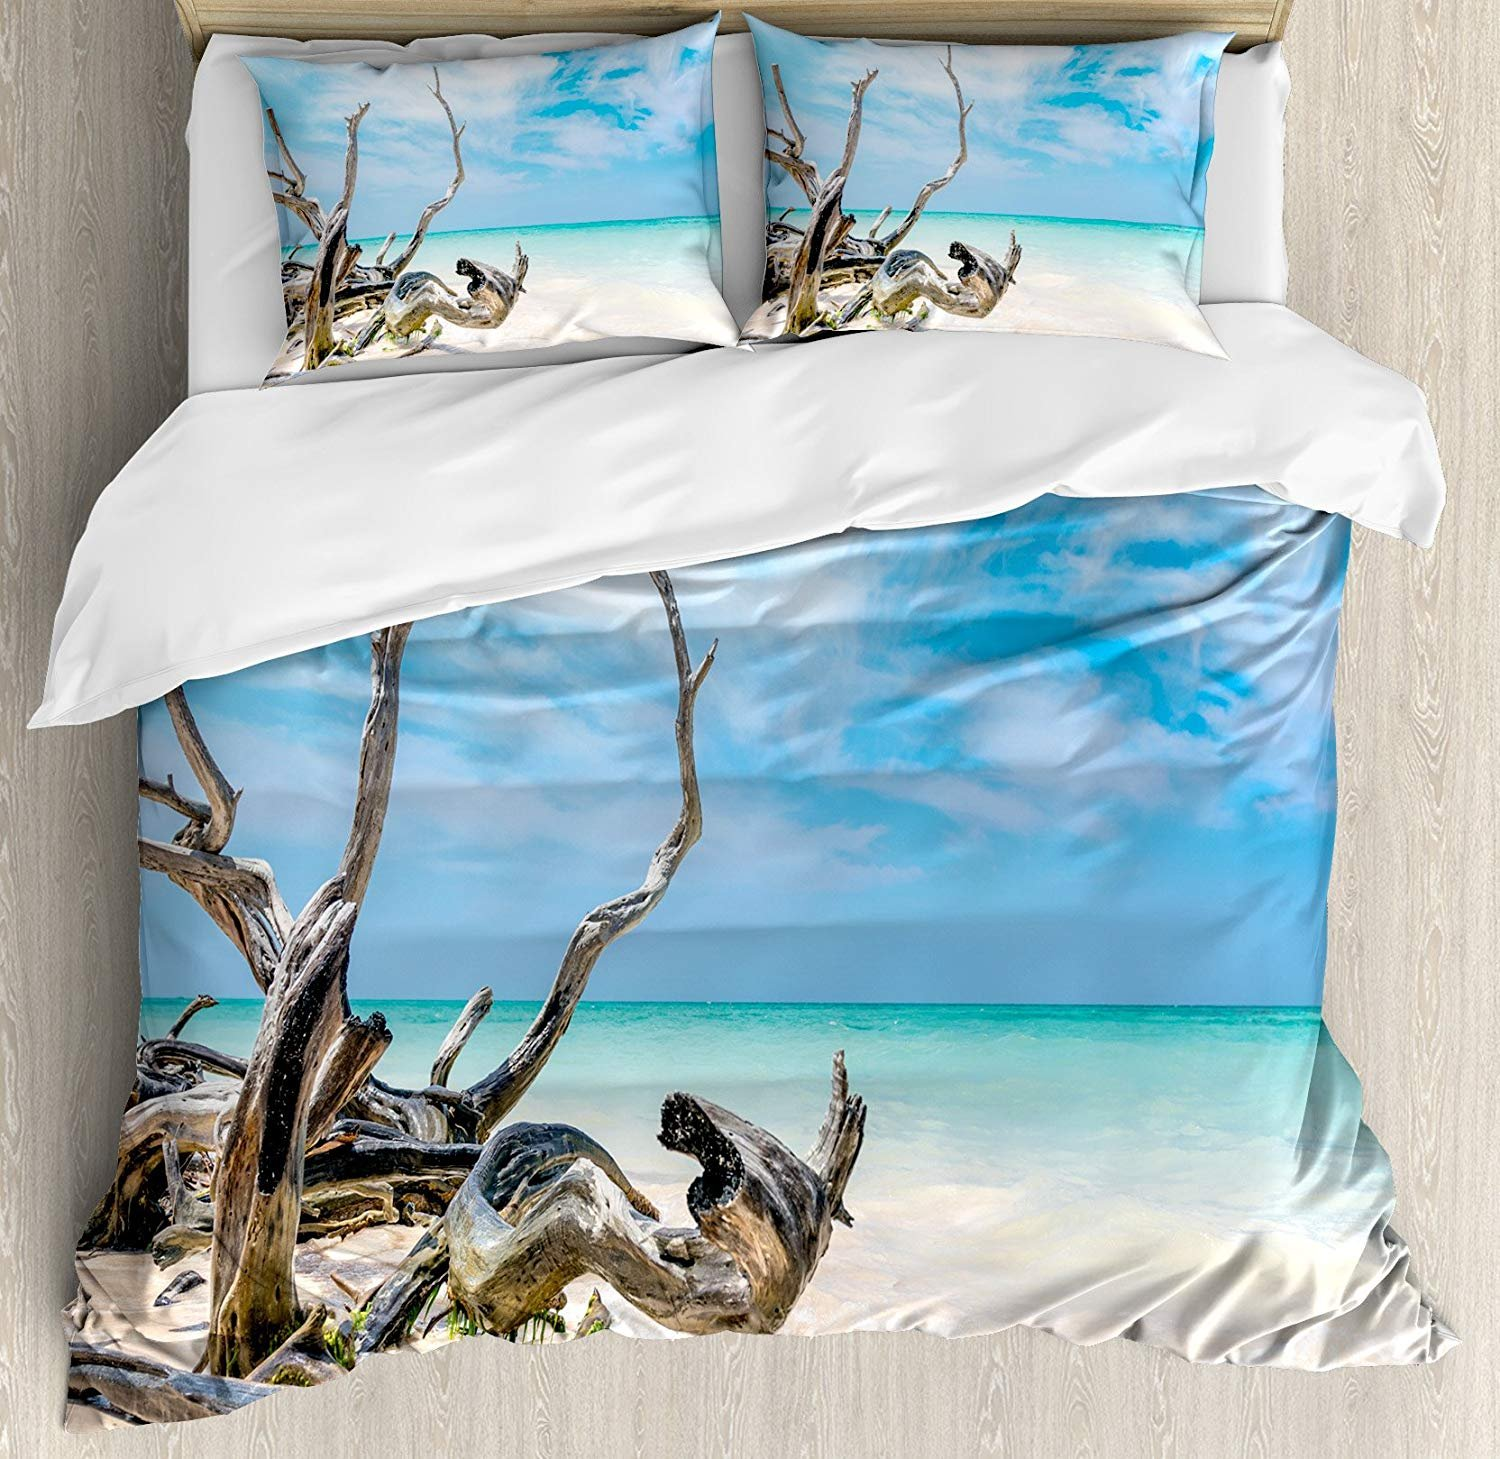 Driftwood Bedding Duvet Cover Sets for Children/Adults/Kids/Teens Twin Size, Seascape Theme Branches on The Sandy Beach of Cuba and The Sky Image, Hotel Luxury Decorative 4pcs Set, Turquoise Sky Blue